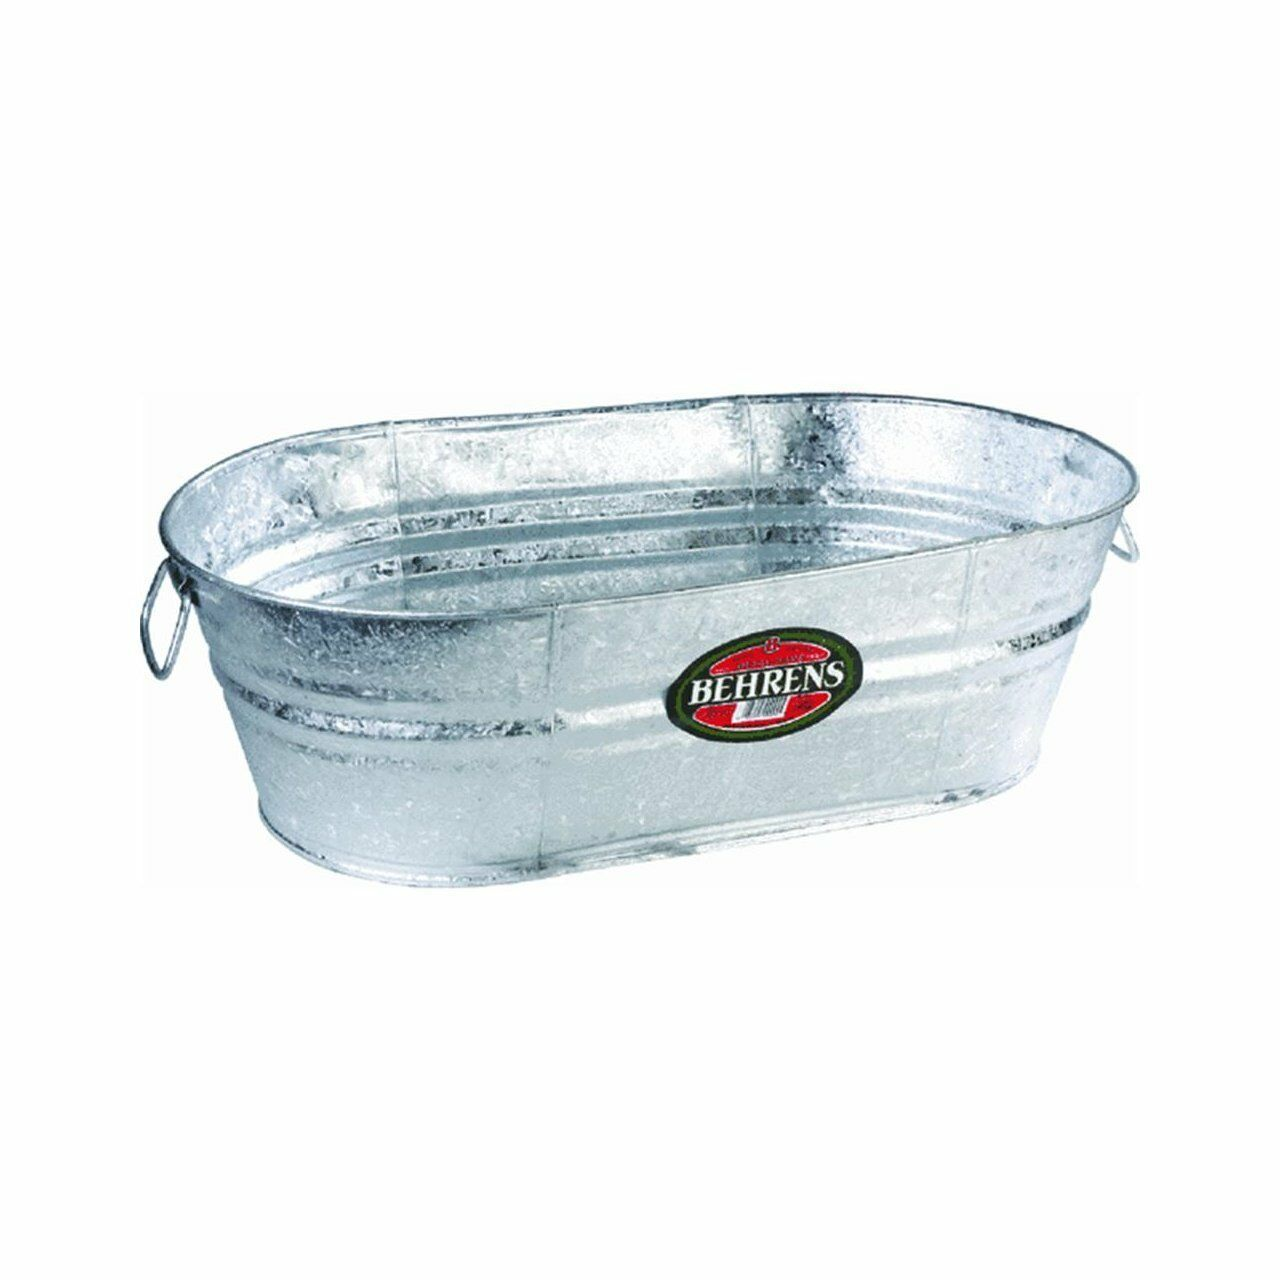 BEHRENS LOT OF (3) 16 GALLON HOT DIPPED GALVANIZED WATER OVAL WASH TUBS 6228399